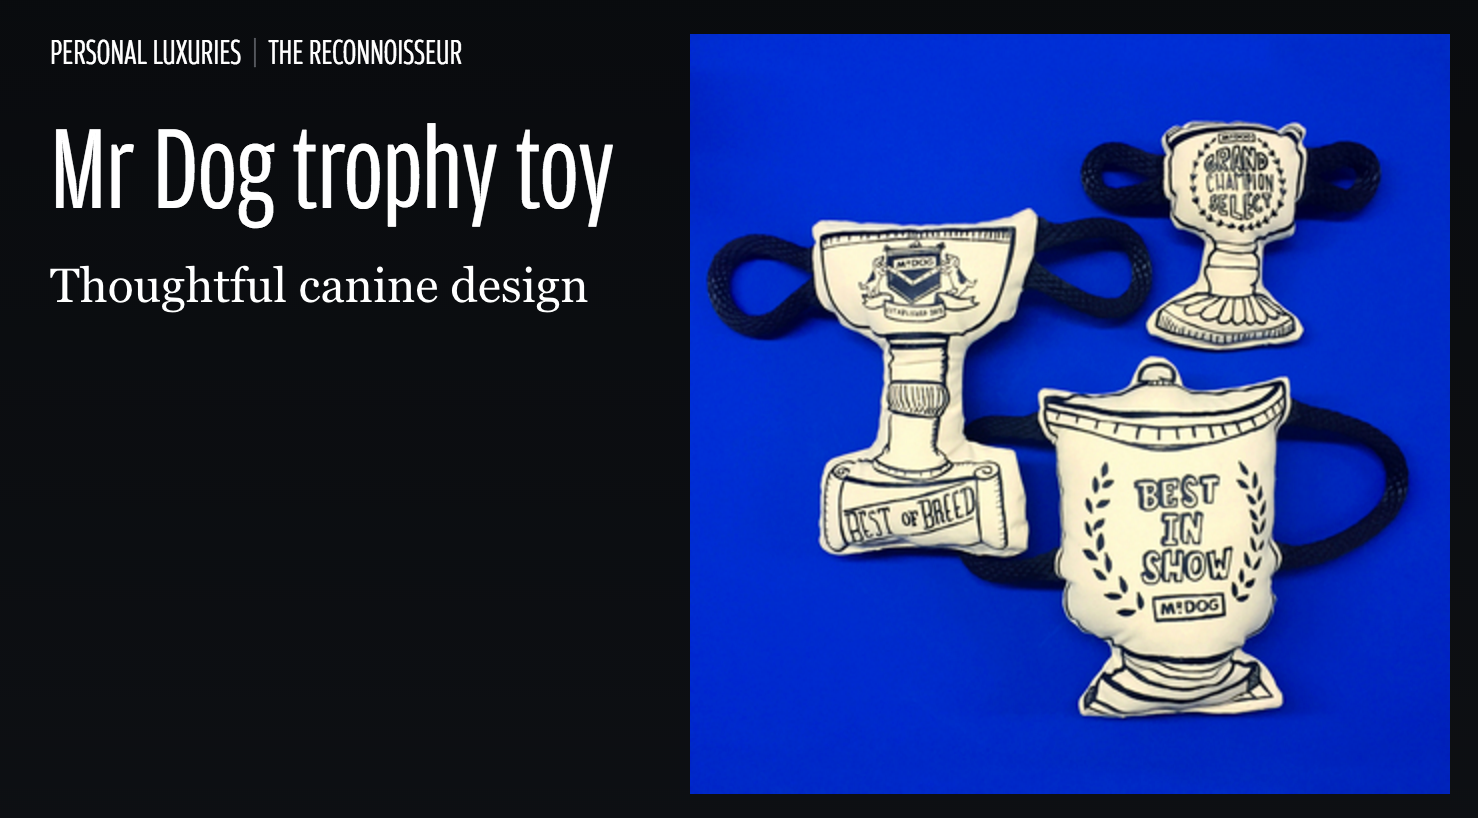 Trophy Toy: As seen in Financial Times